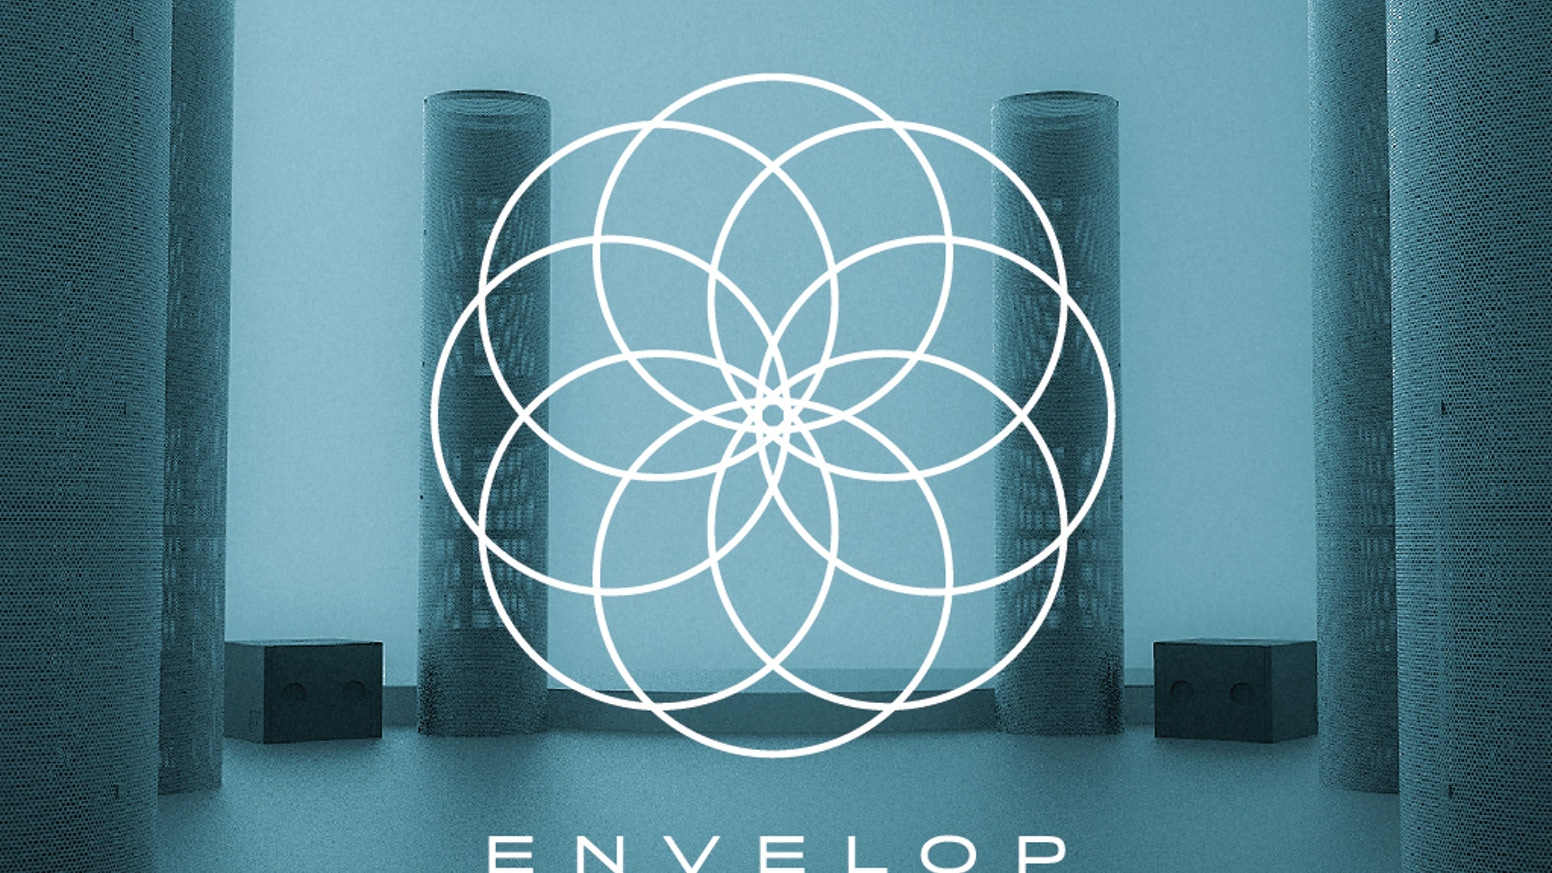 Envelop is a spatial audio platform with free open-source software, and custom-built listening spaces. This campaign was for the installation of Envelop at The Midway, our San Francisco venue for live electronic music, deep listening, and workshops.